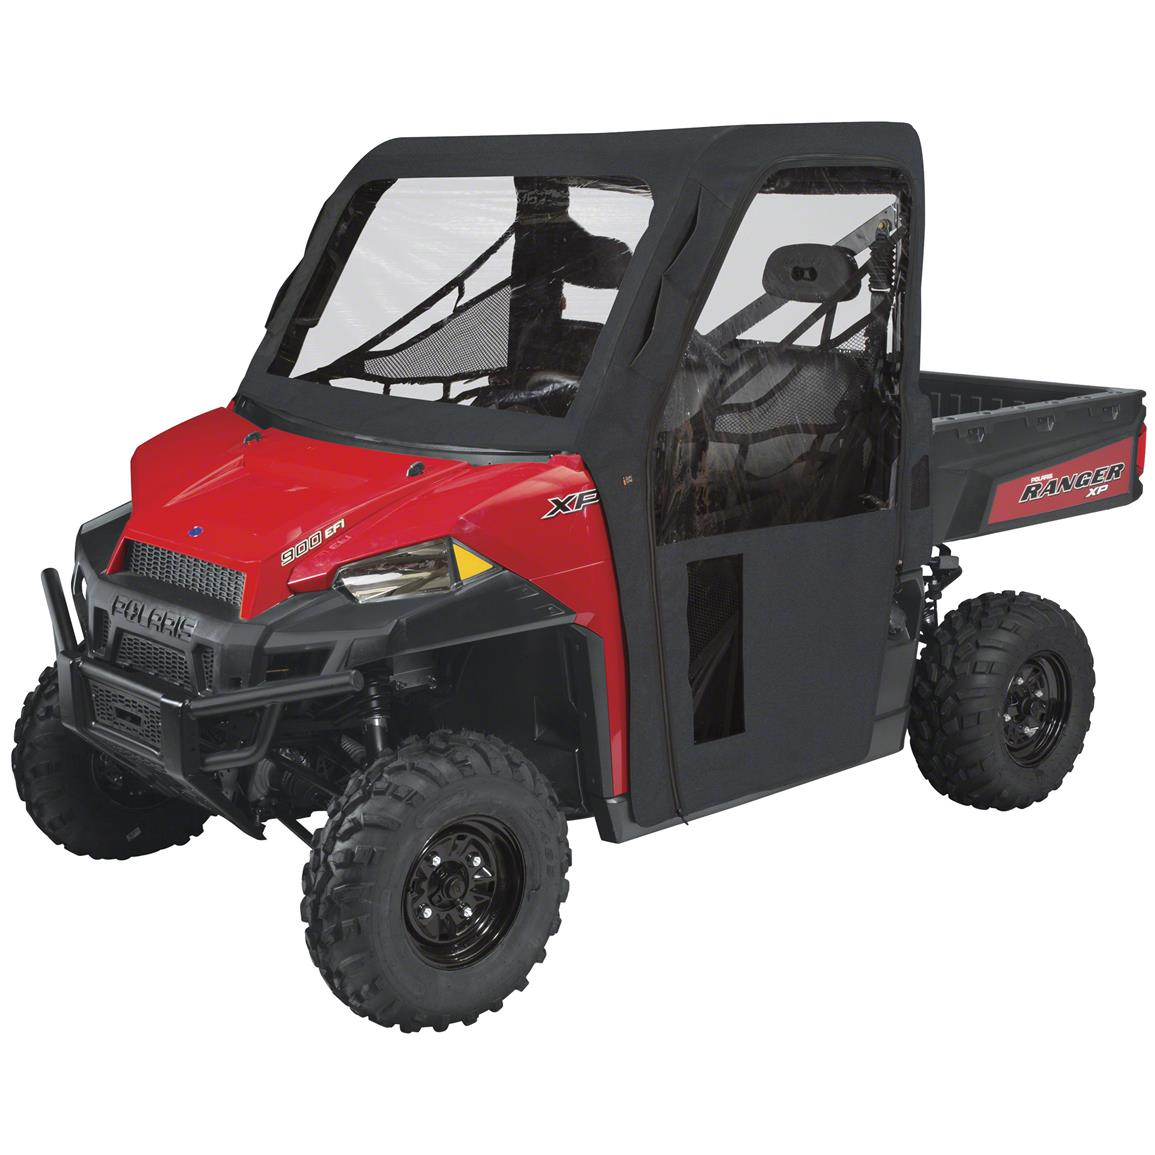 Quad Gear UTV Cab Enclosure, Polaris Ranger 900 XP, Black